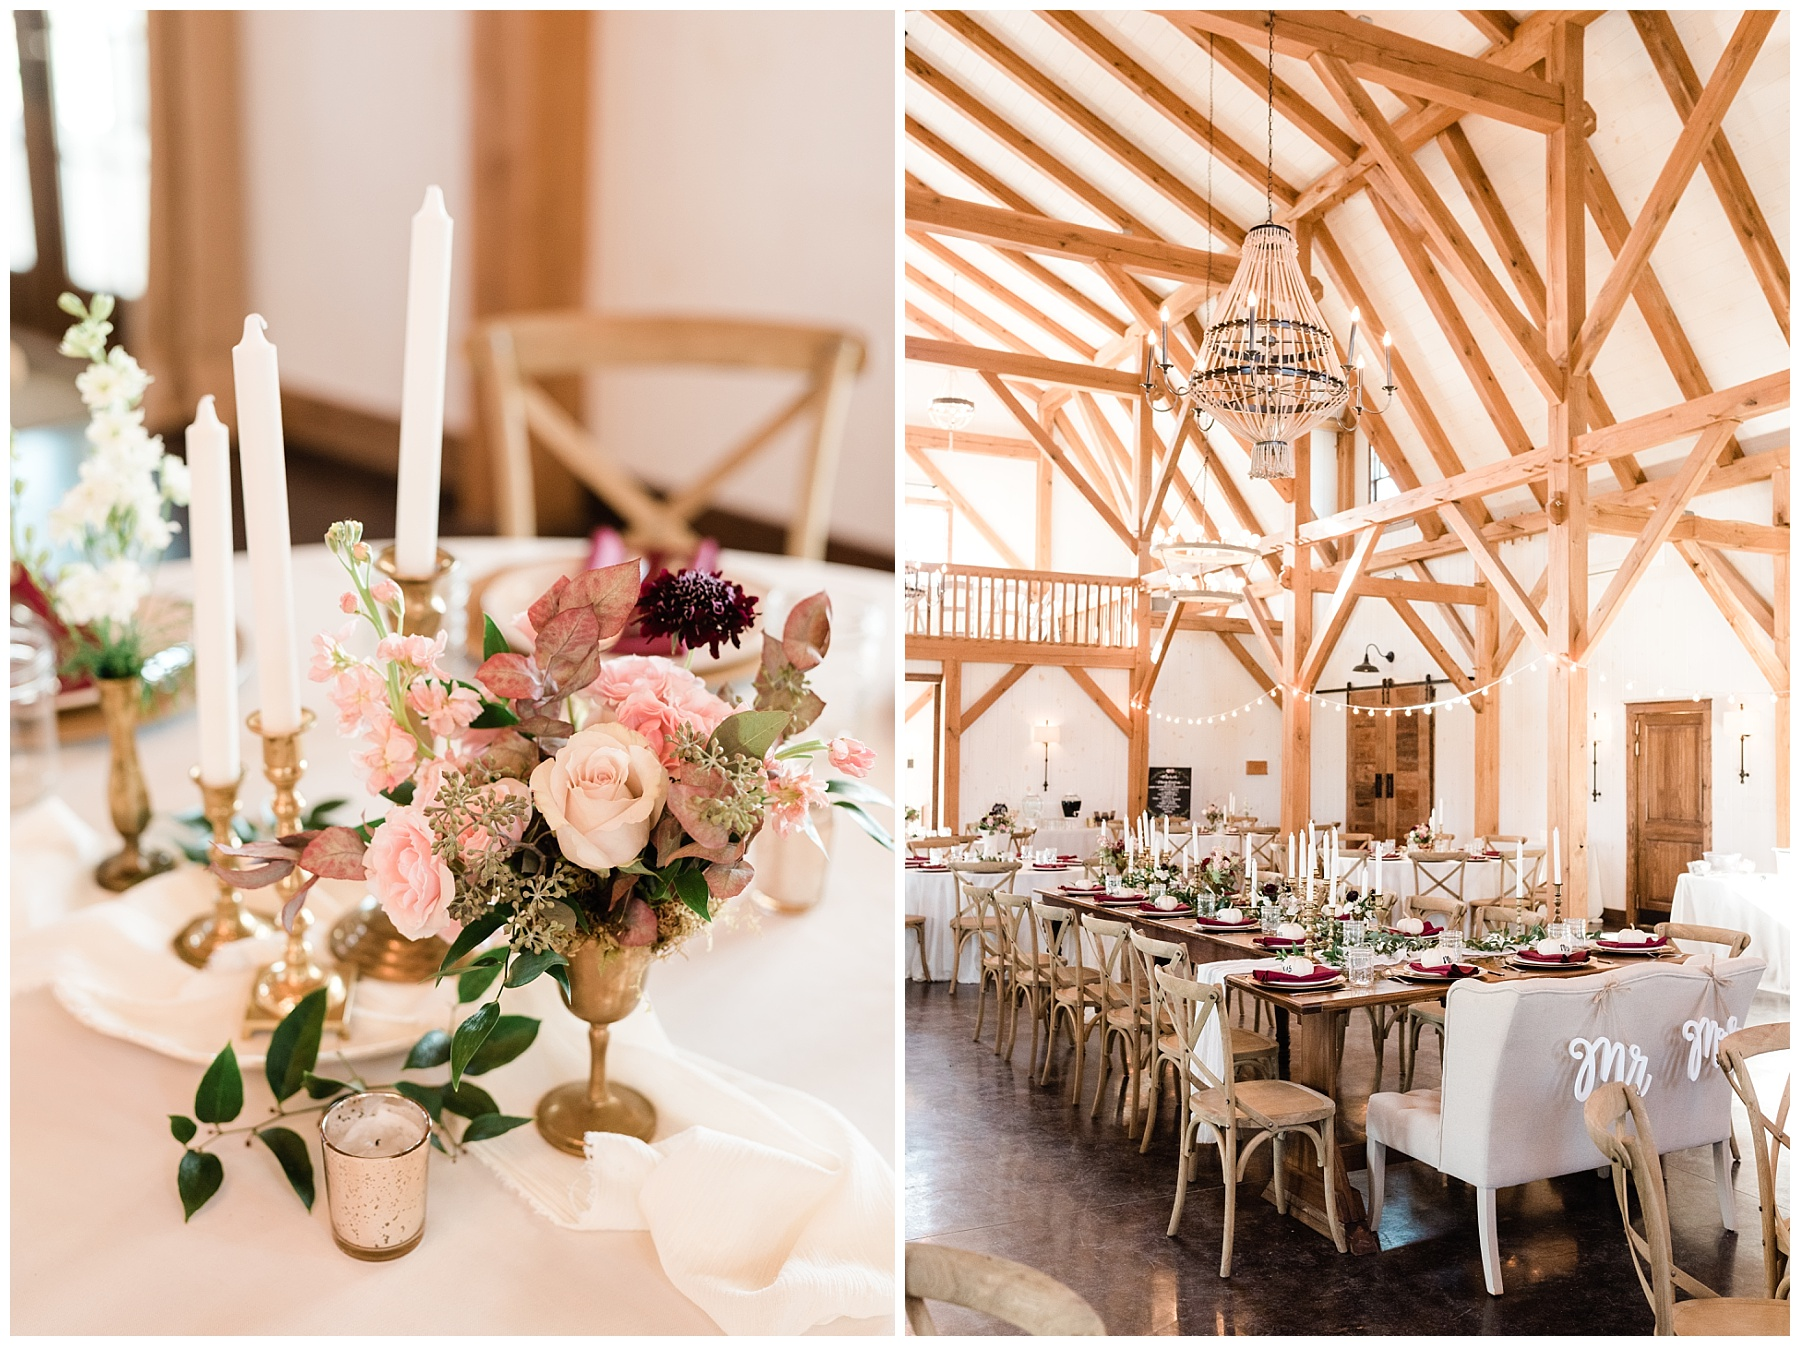 Golden Autumn Outdoor Wedding with Ivory, Bergundy, and Blush Color Palette at Blue Bell Farms  by Kelsi Kliethermes Photography_0057.jpg